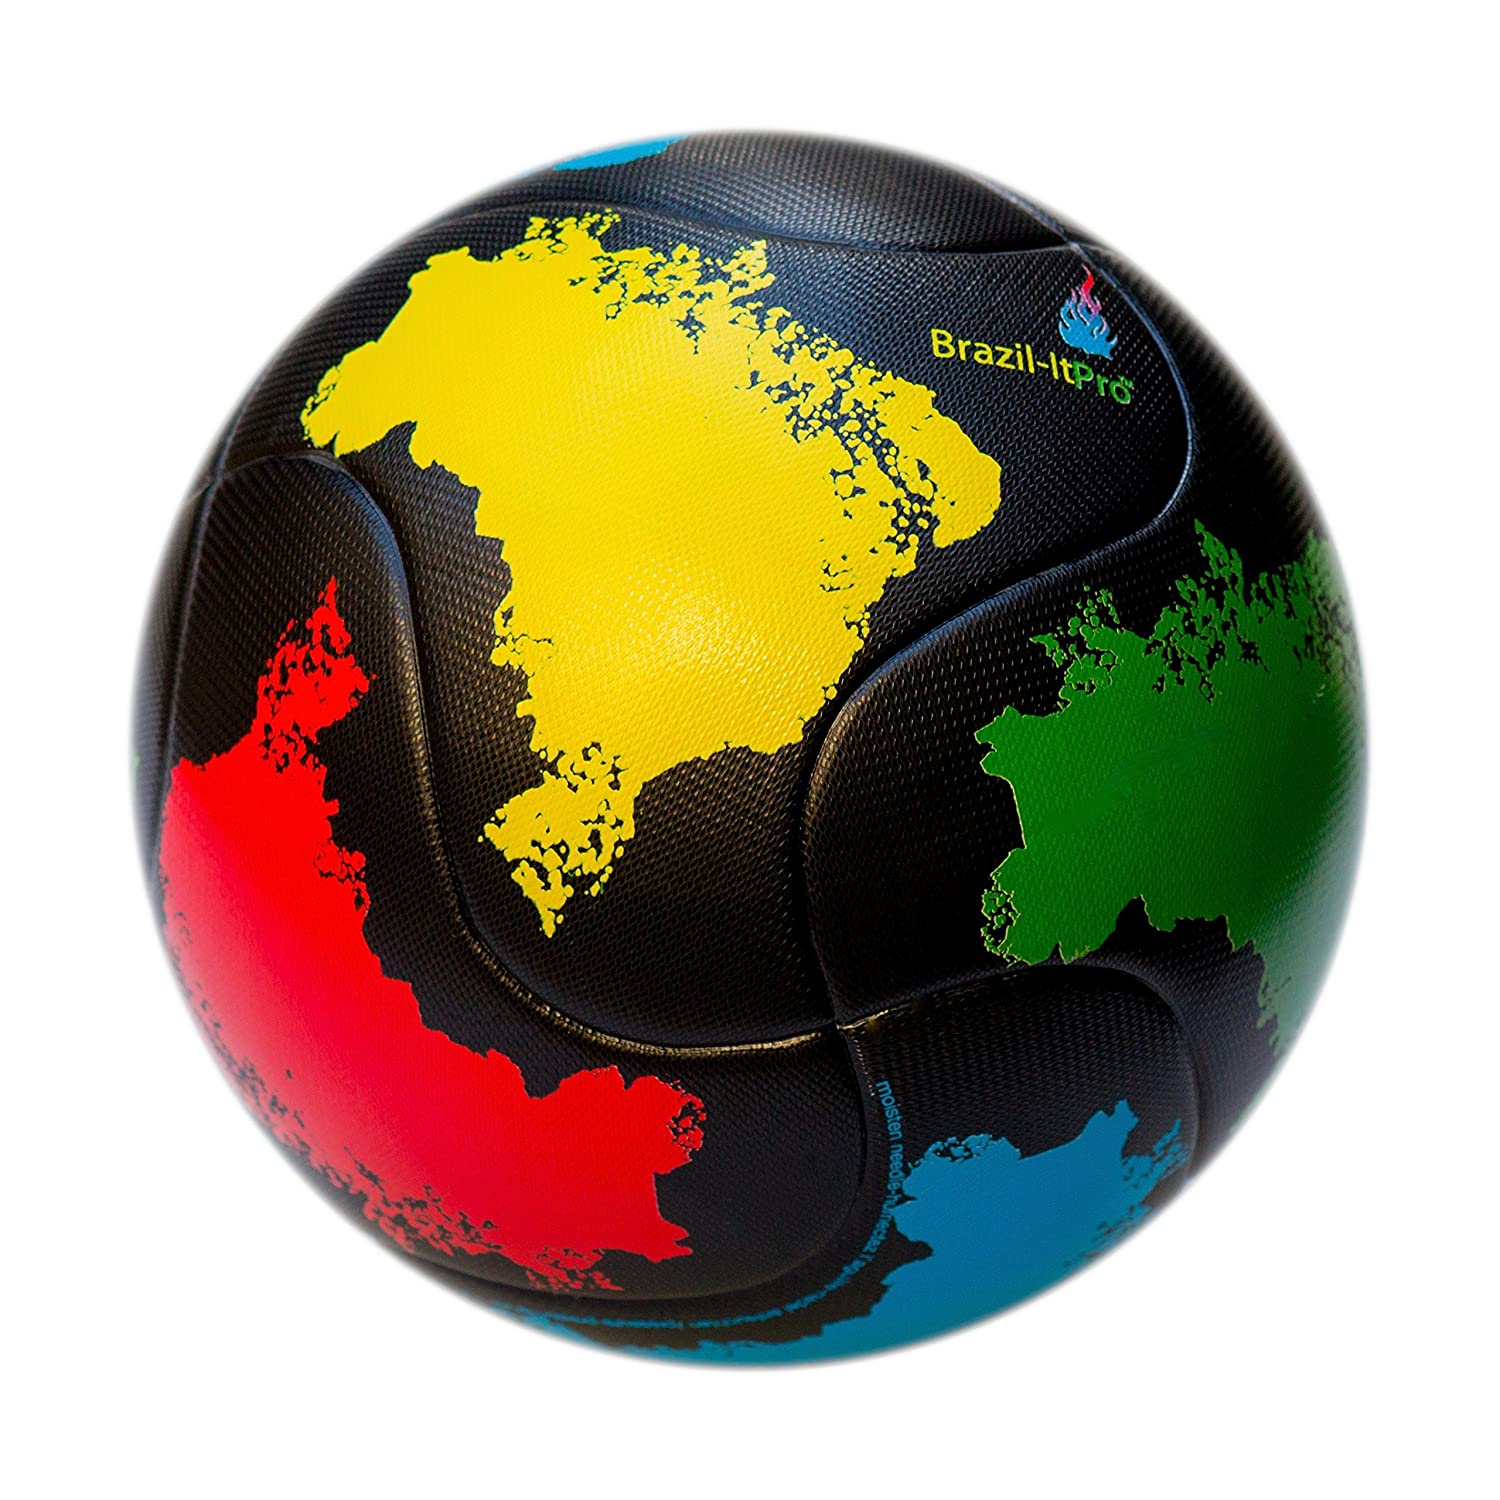 bend-itサッカー、knuckle-it Pro、サッカーボール、Official Match Ball with VPM and VRCテクノロジー B075DZRPDF 5|Textured PU Material (Black, Yellow, Red, Green, Blue) Textured PU Material (Black, Yellow, Red, Green, Blue) 5